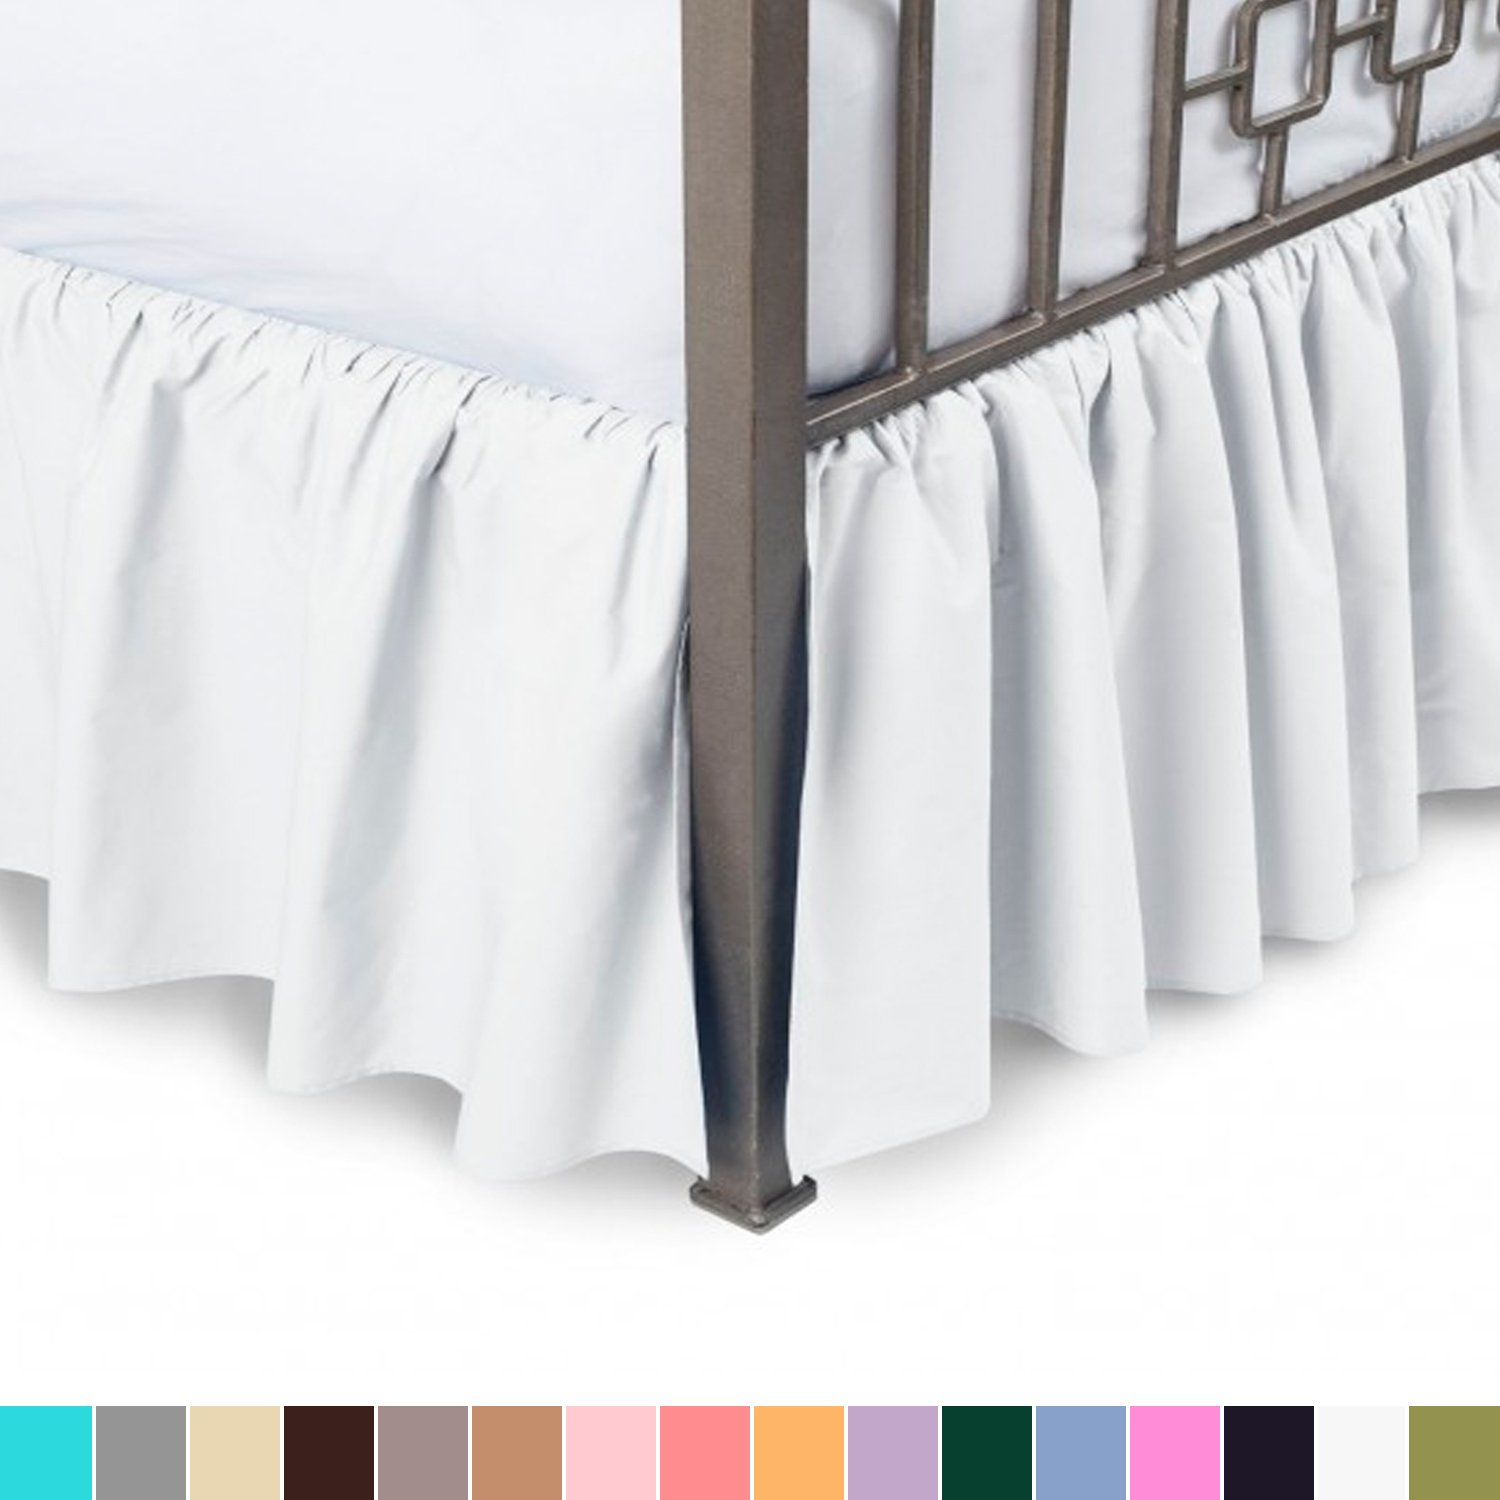 Harmony Lane Ruffled Bed Skirt with Split Corners - Twin, White, 21 Inch Drop Bedskirt (Available in All Sizes and 16 Colors)